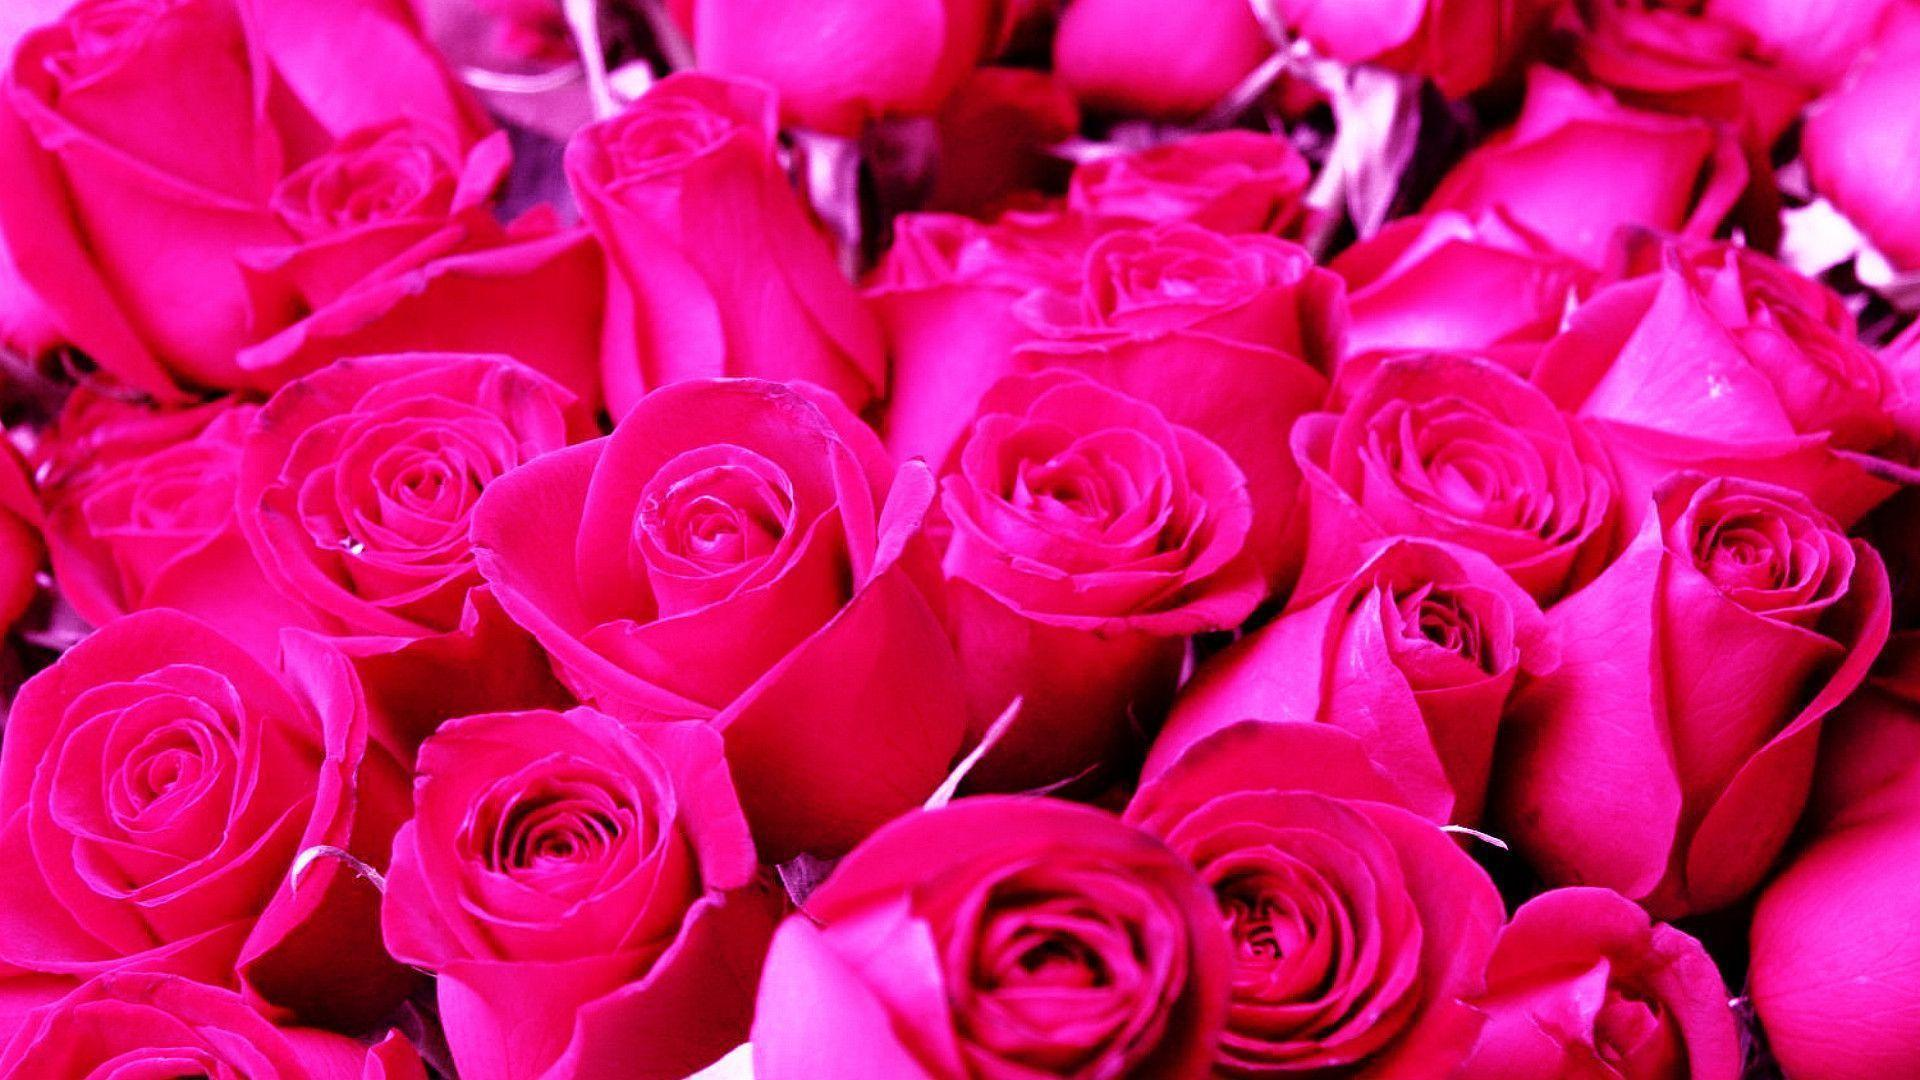 Pink roses backgrounds wallpaper cave - Pink rose hd wallpaper ...